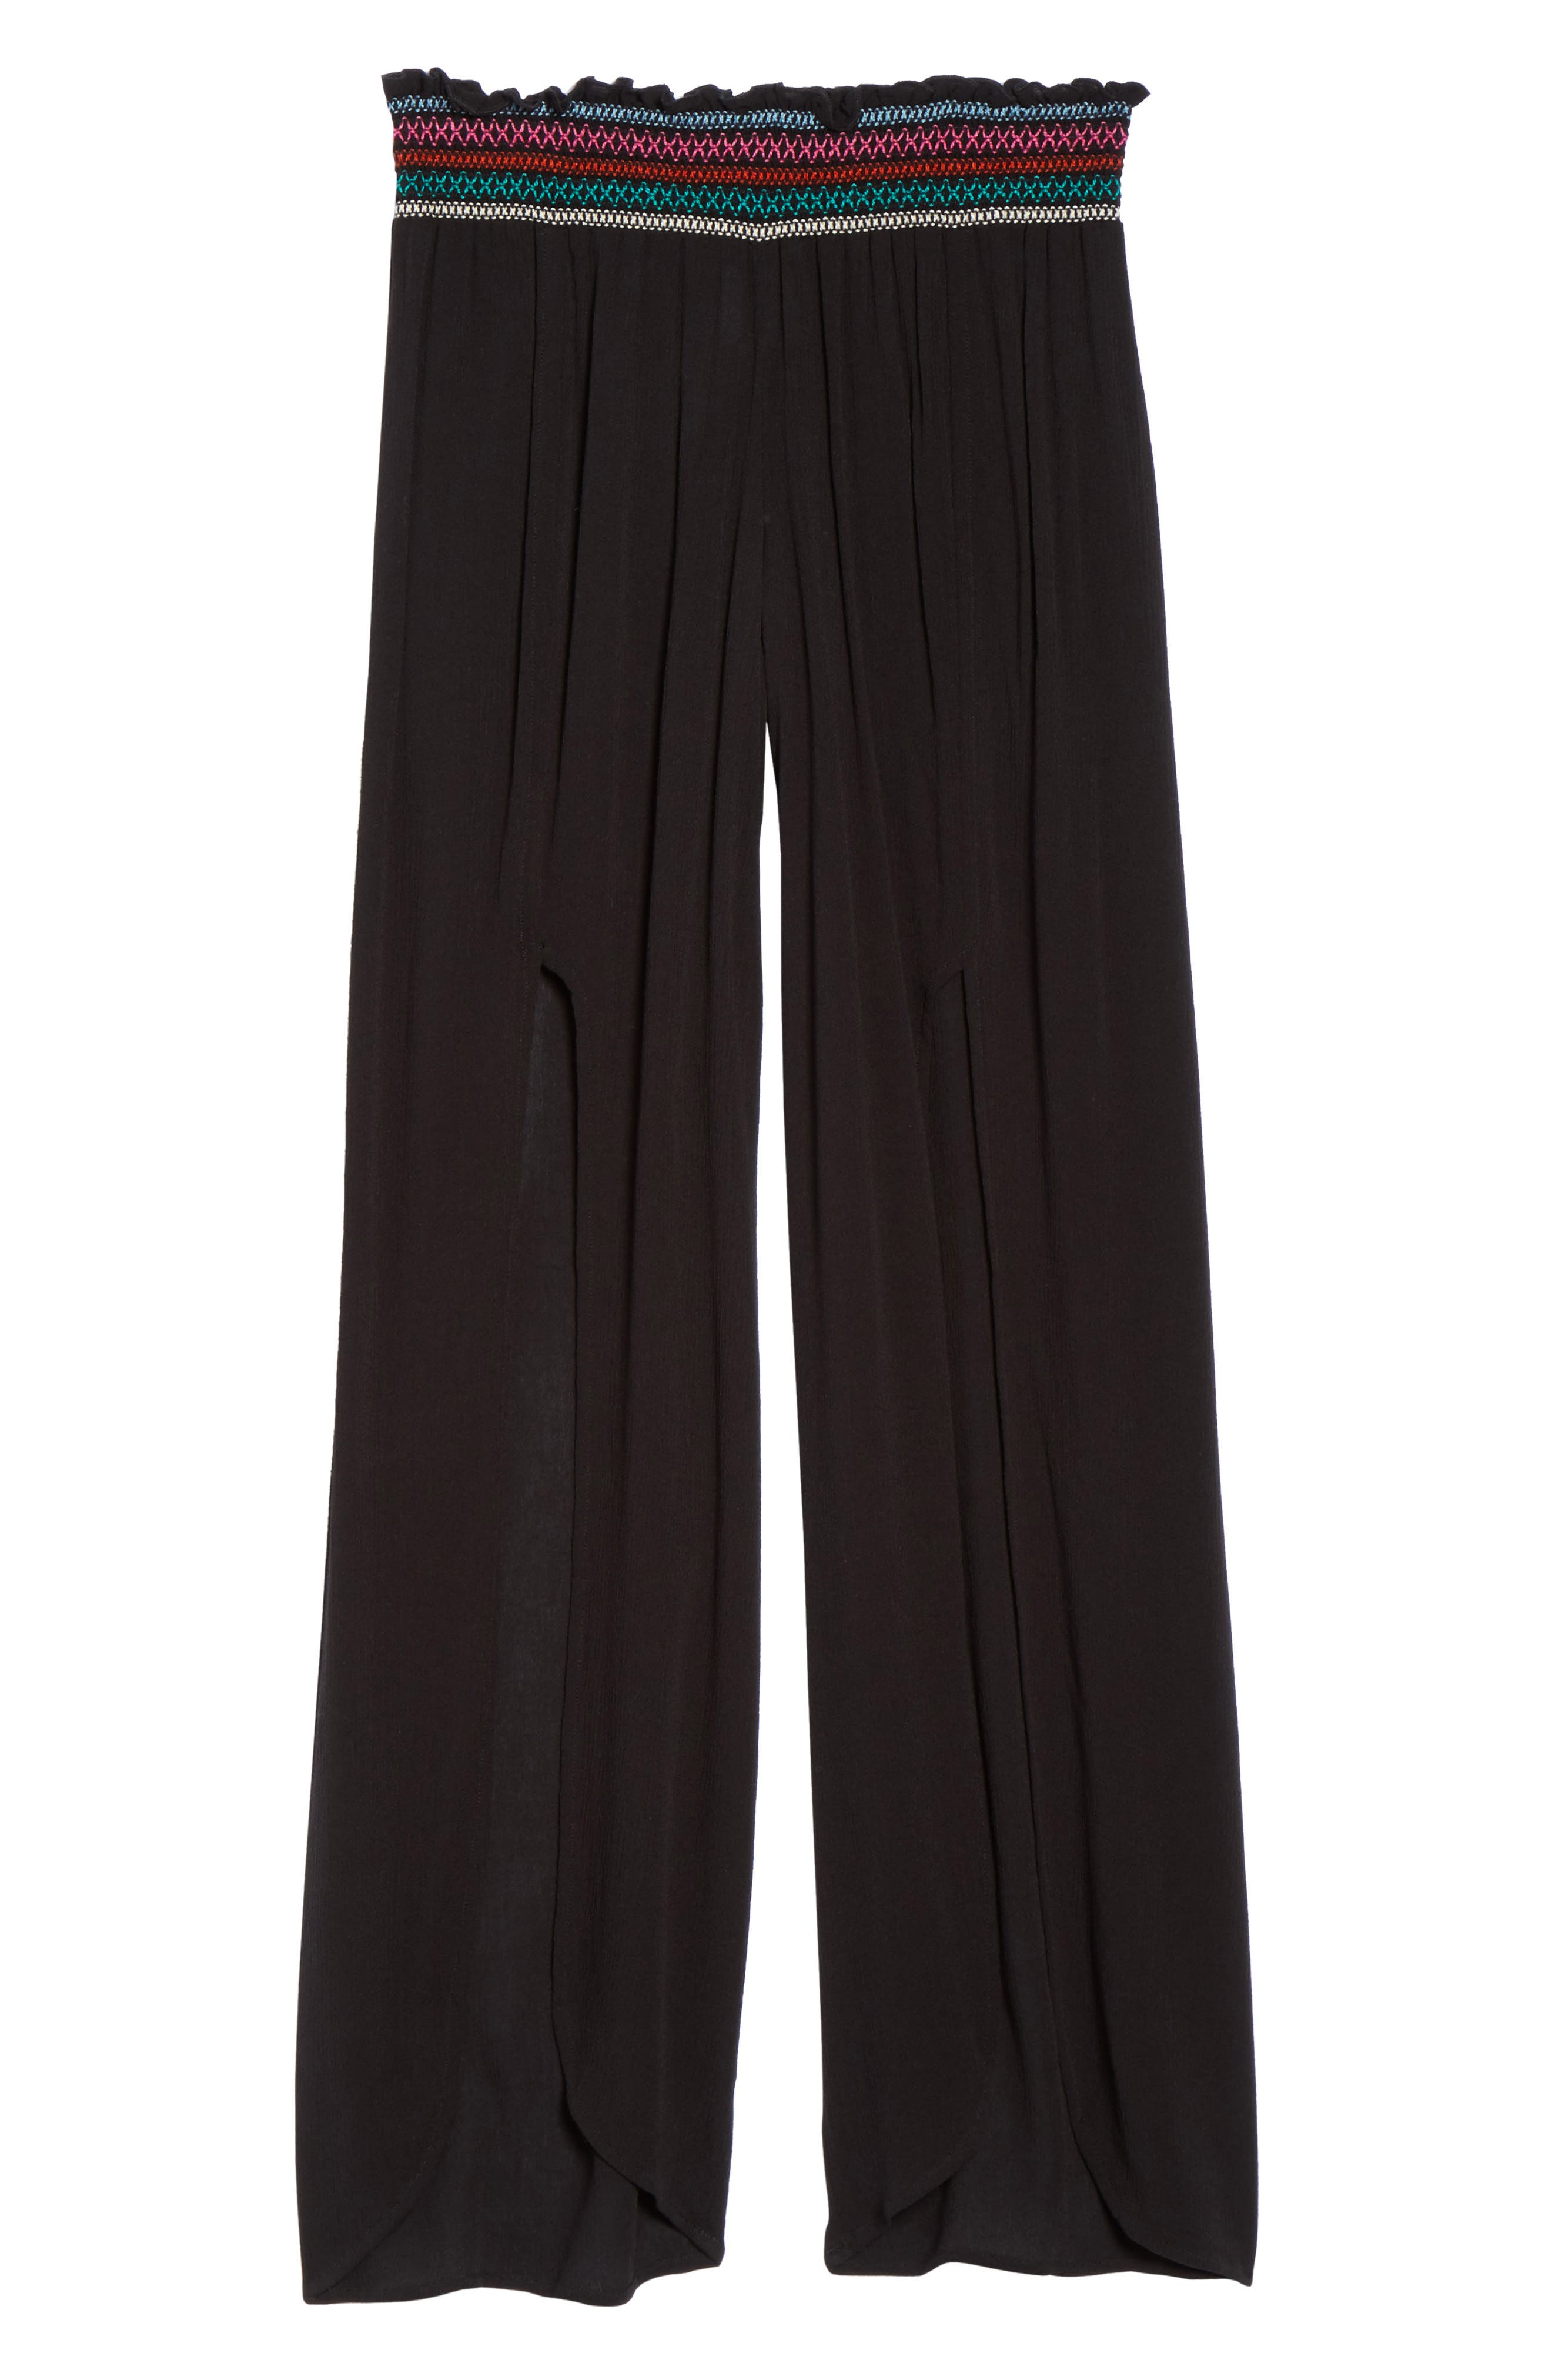 Crystal Cove Cover-Up Pants,                             Alternate thumbnail 6, color,                             001